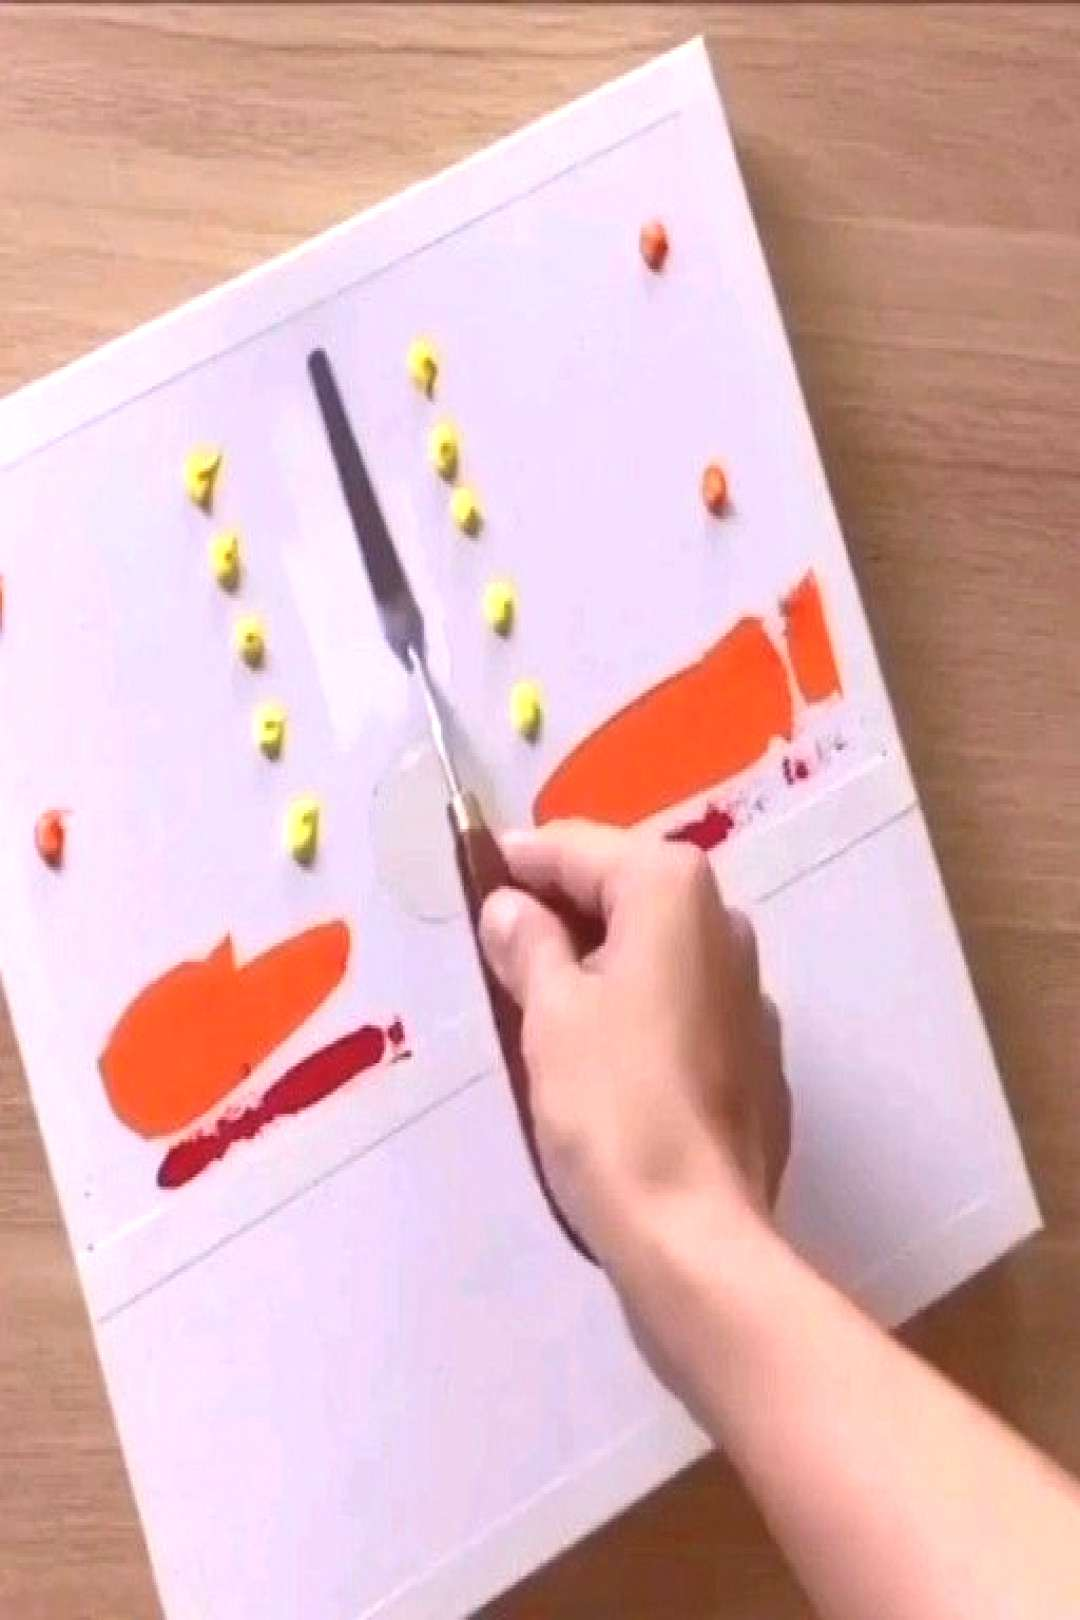 Painting Ideas in 2020 2020 New Painting Ideas Video    Sunset Painting Ideas with Cute Family